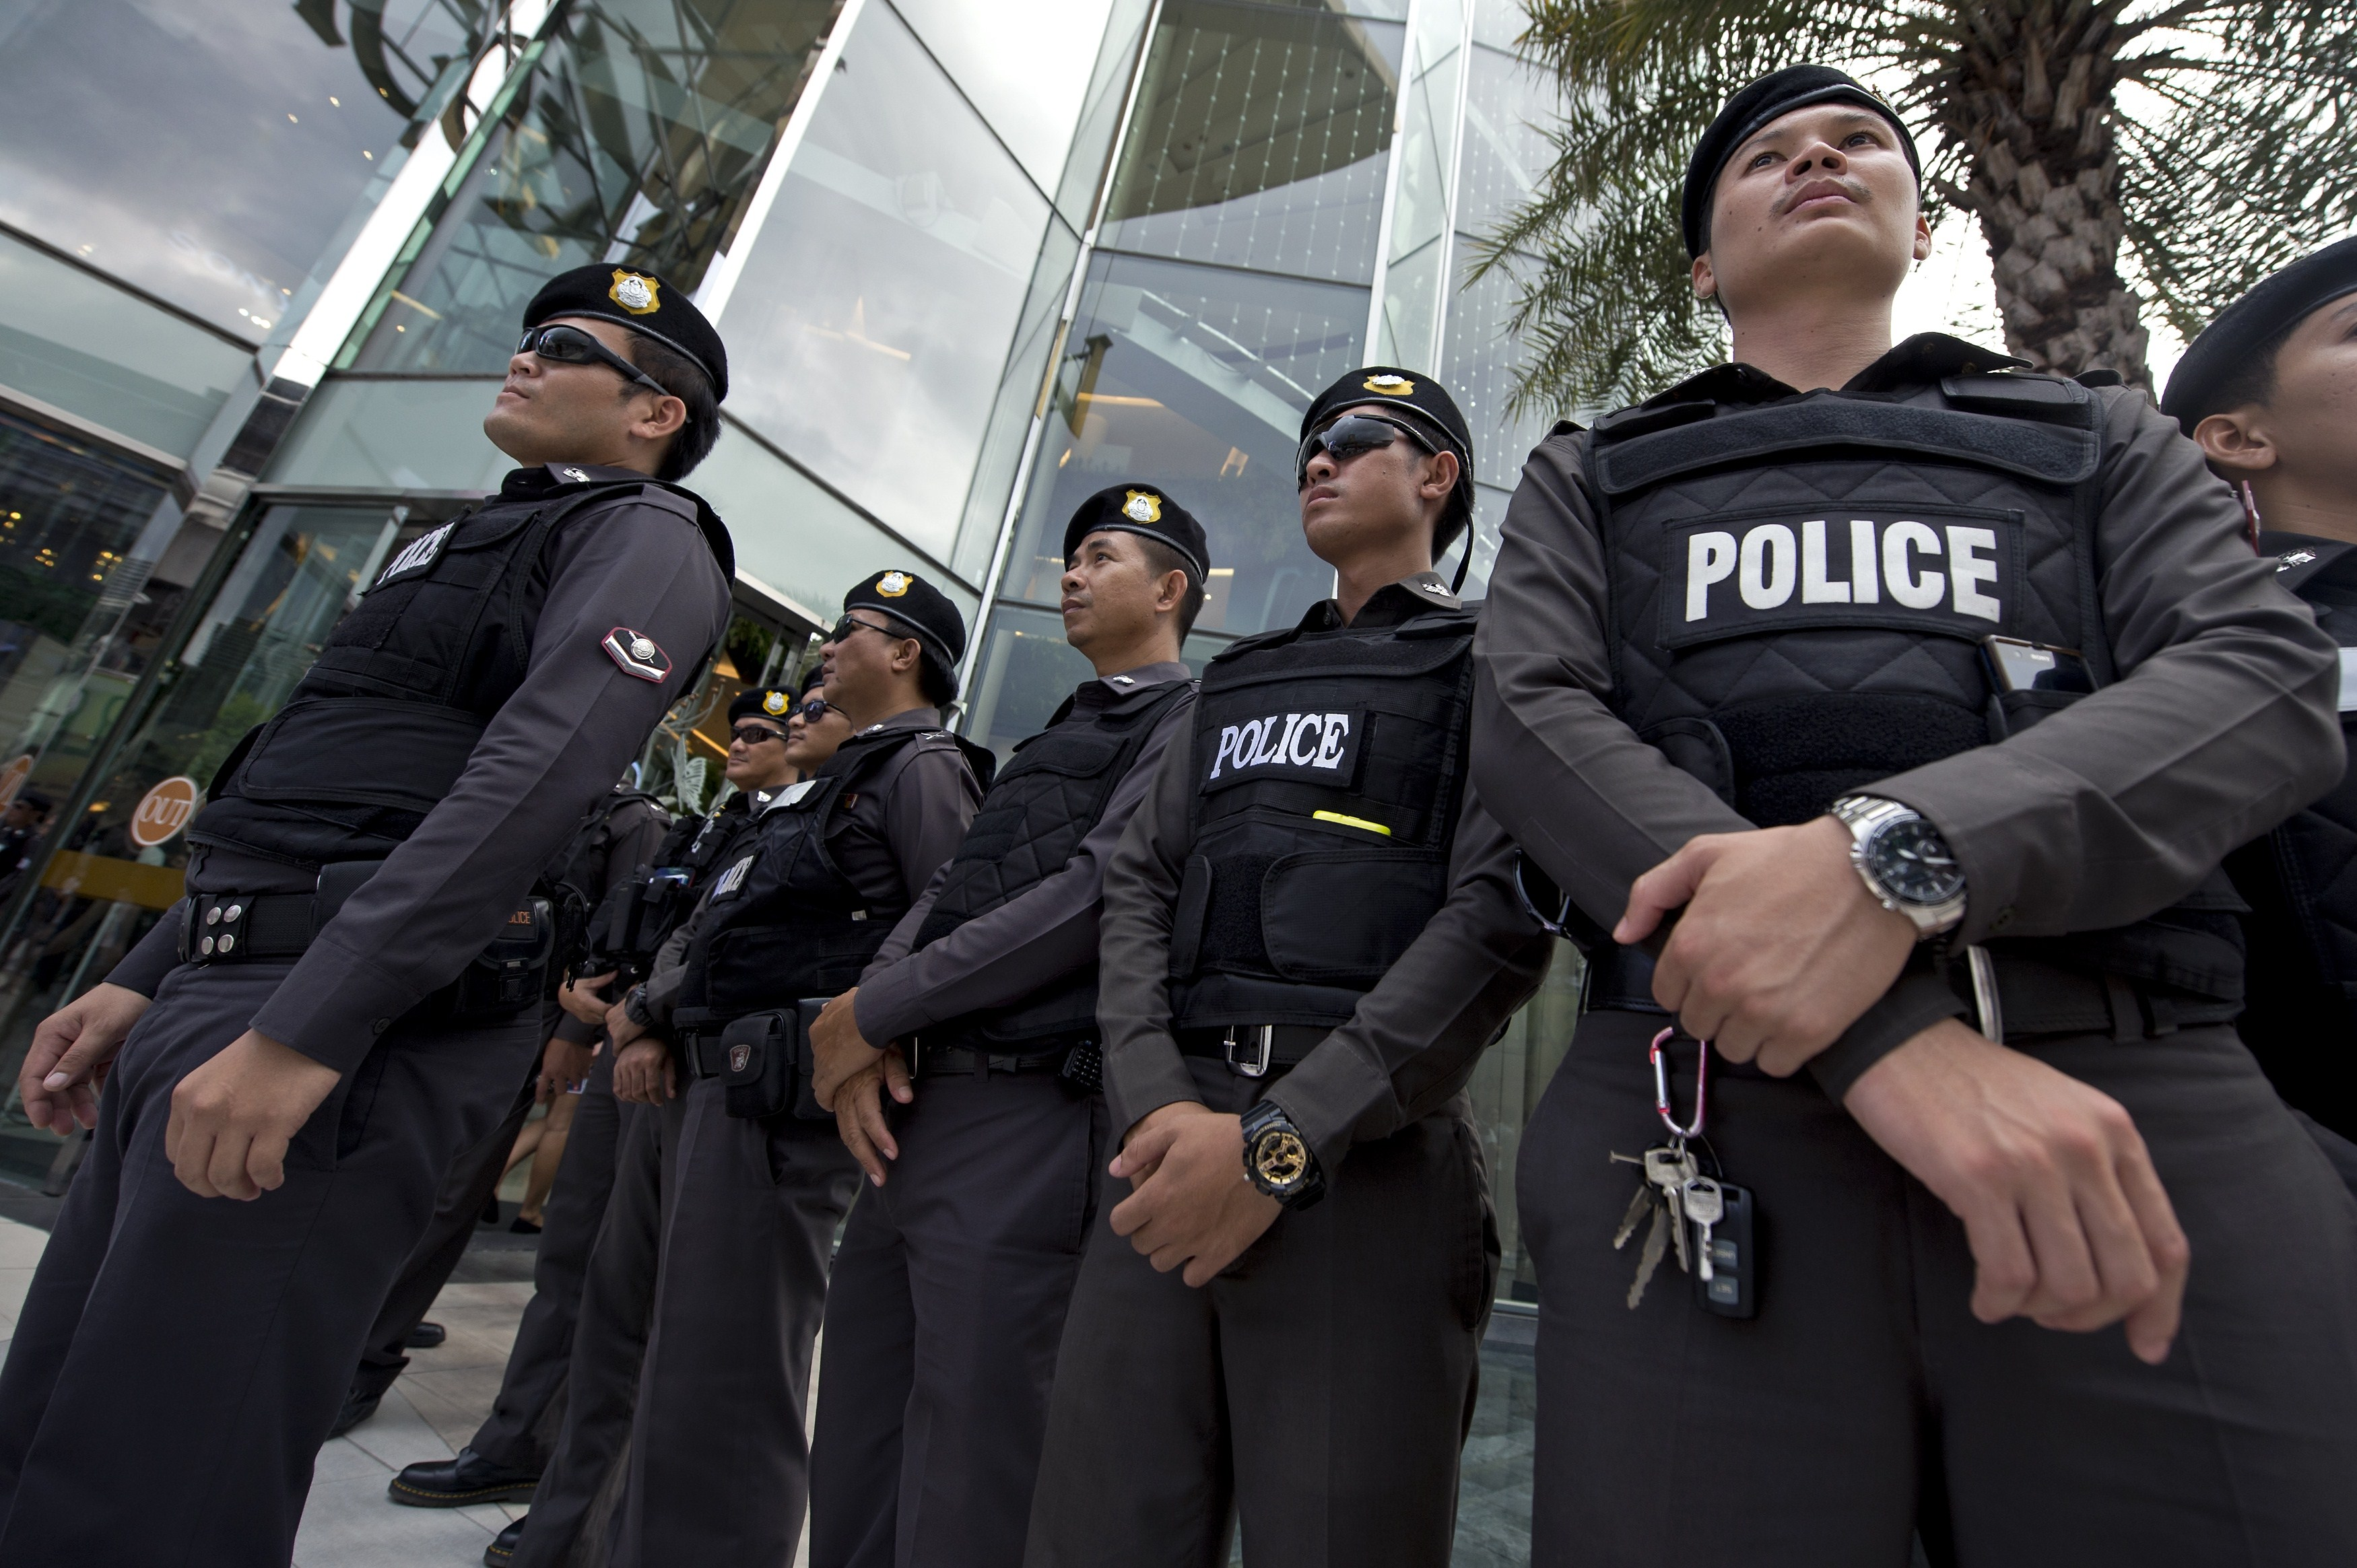 Thai policemen stand guard during a demonstration by an anticoup protester at a shopping mall in Bangkok on June 22, 2014.